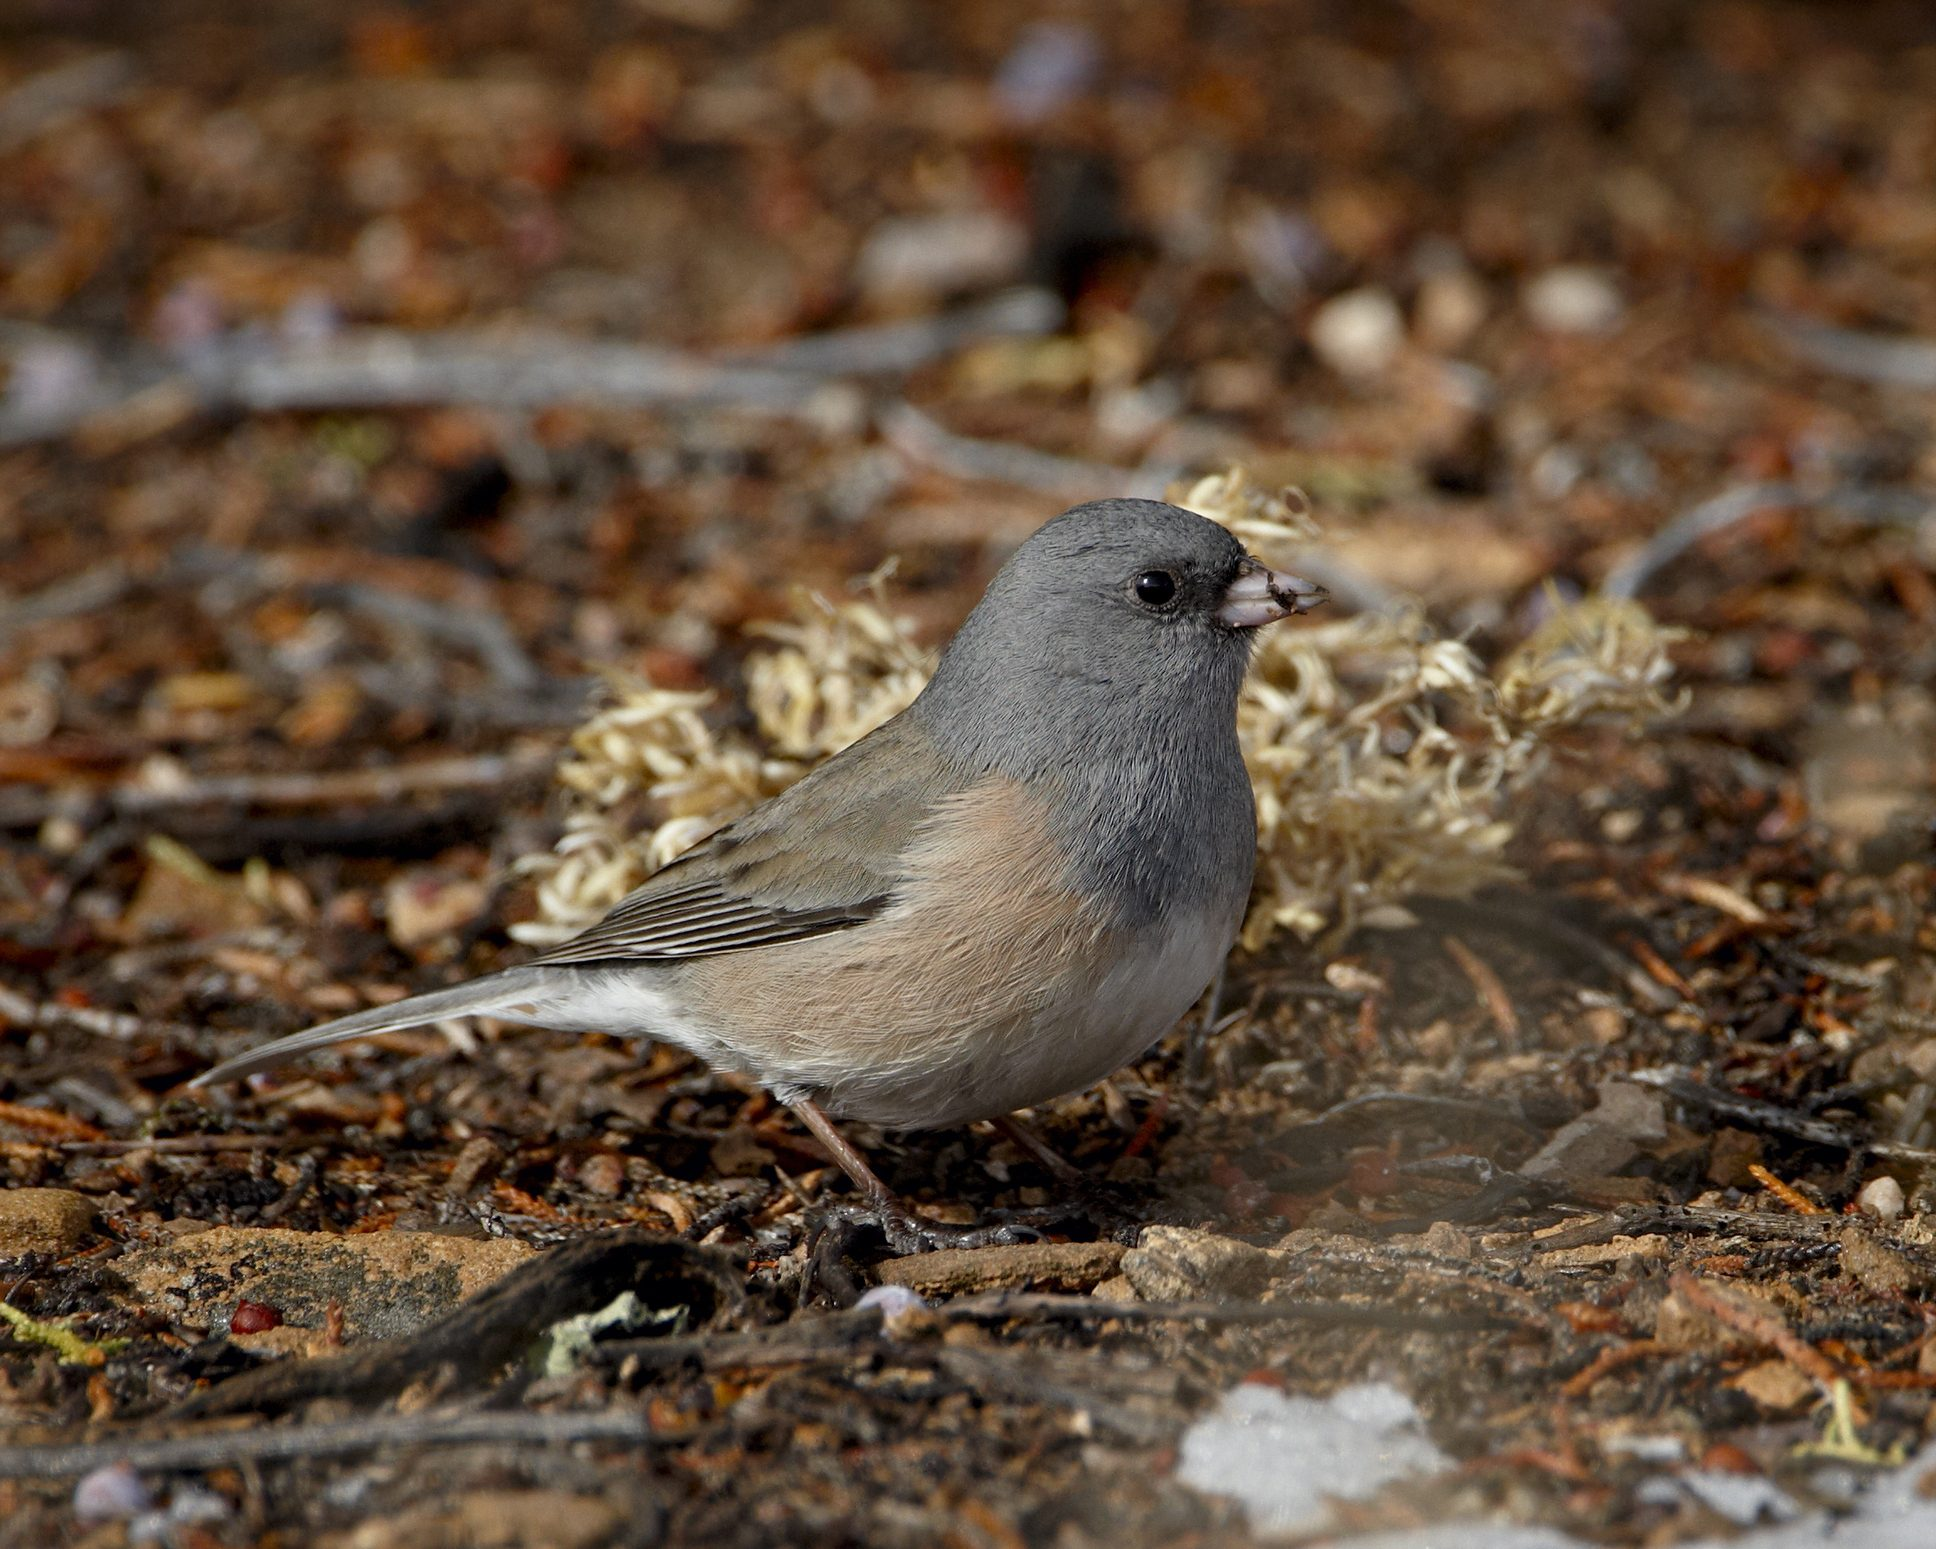 Pink-sided junco (Junco hyemalis mearnsi), Abiquiu Lake, New Mexico, United States of America, North America